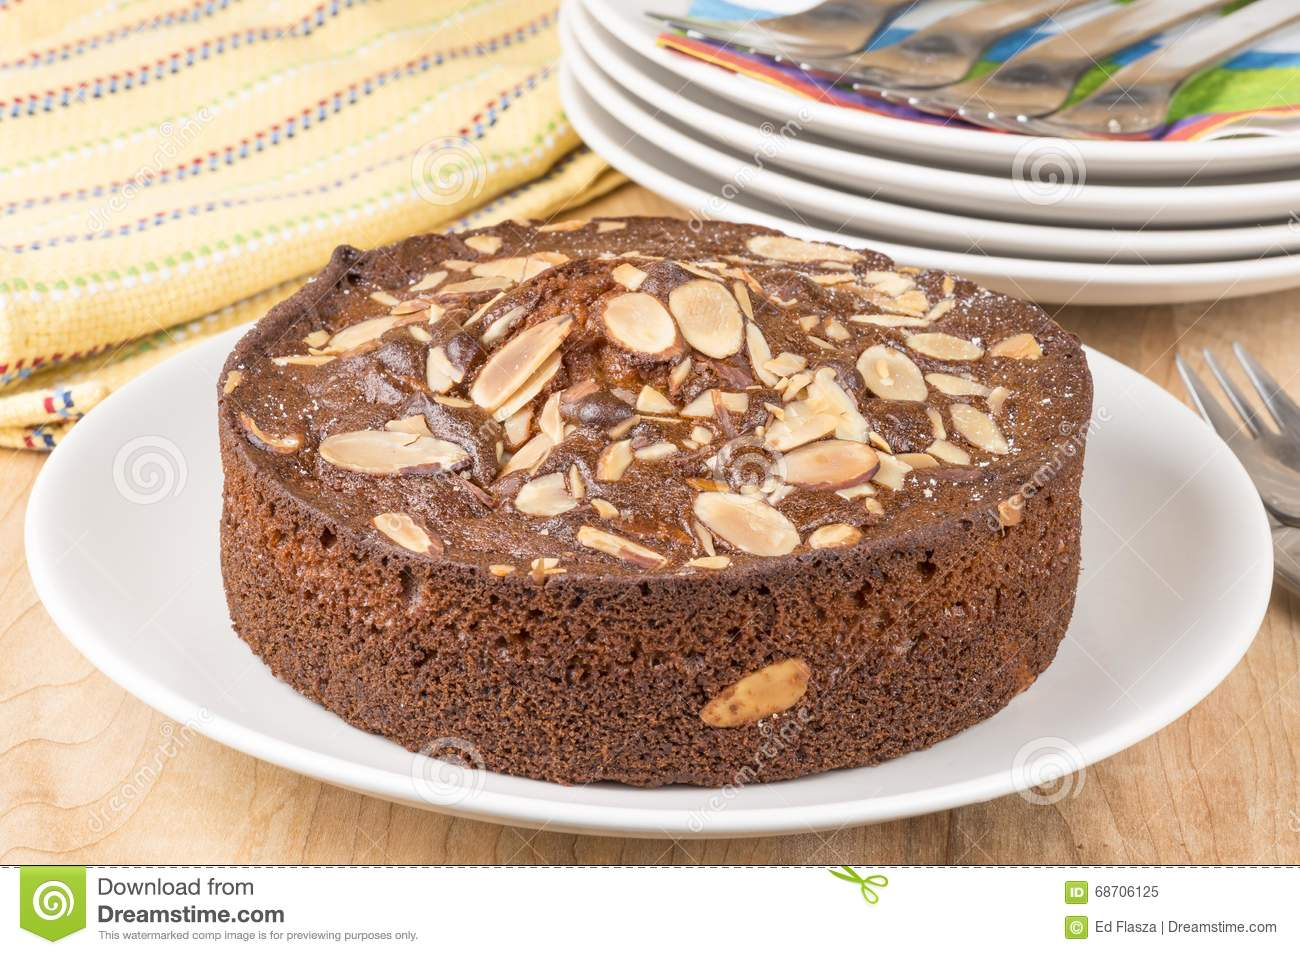 Is It Unhealthy To Eat Coffee Cake For Breakfast